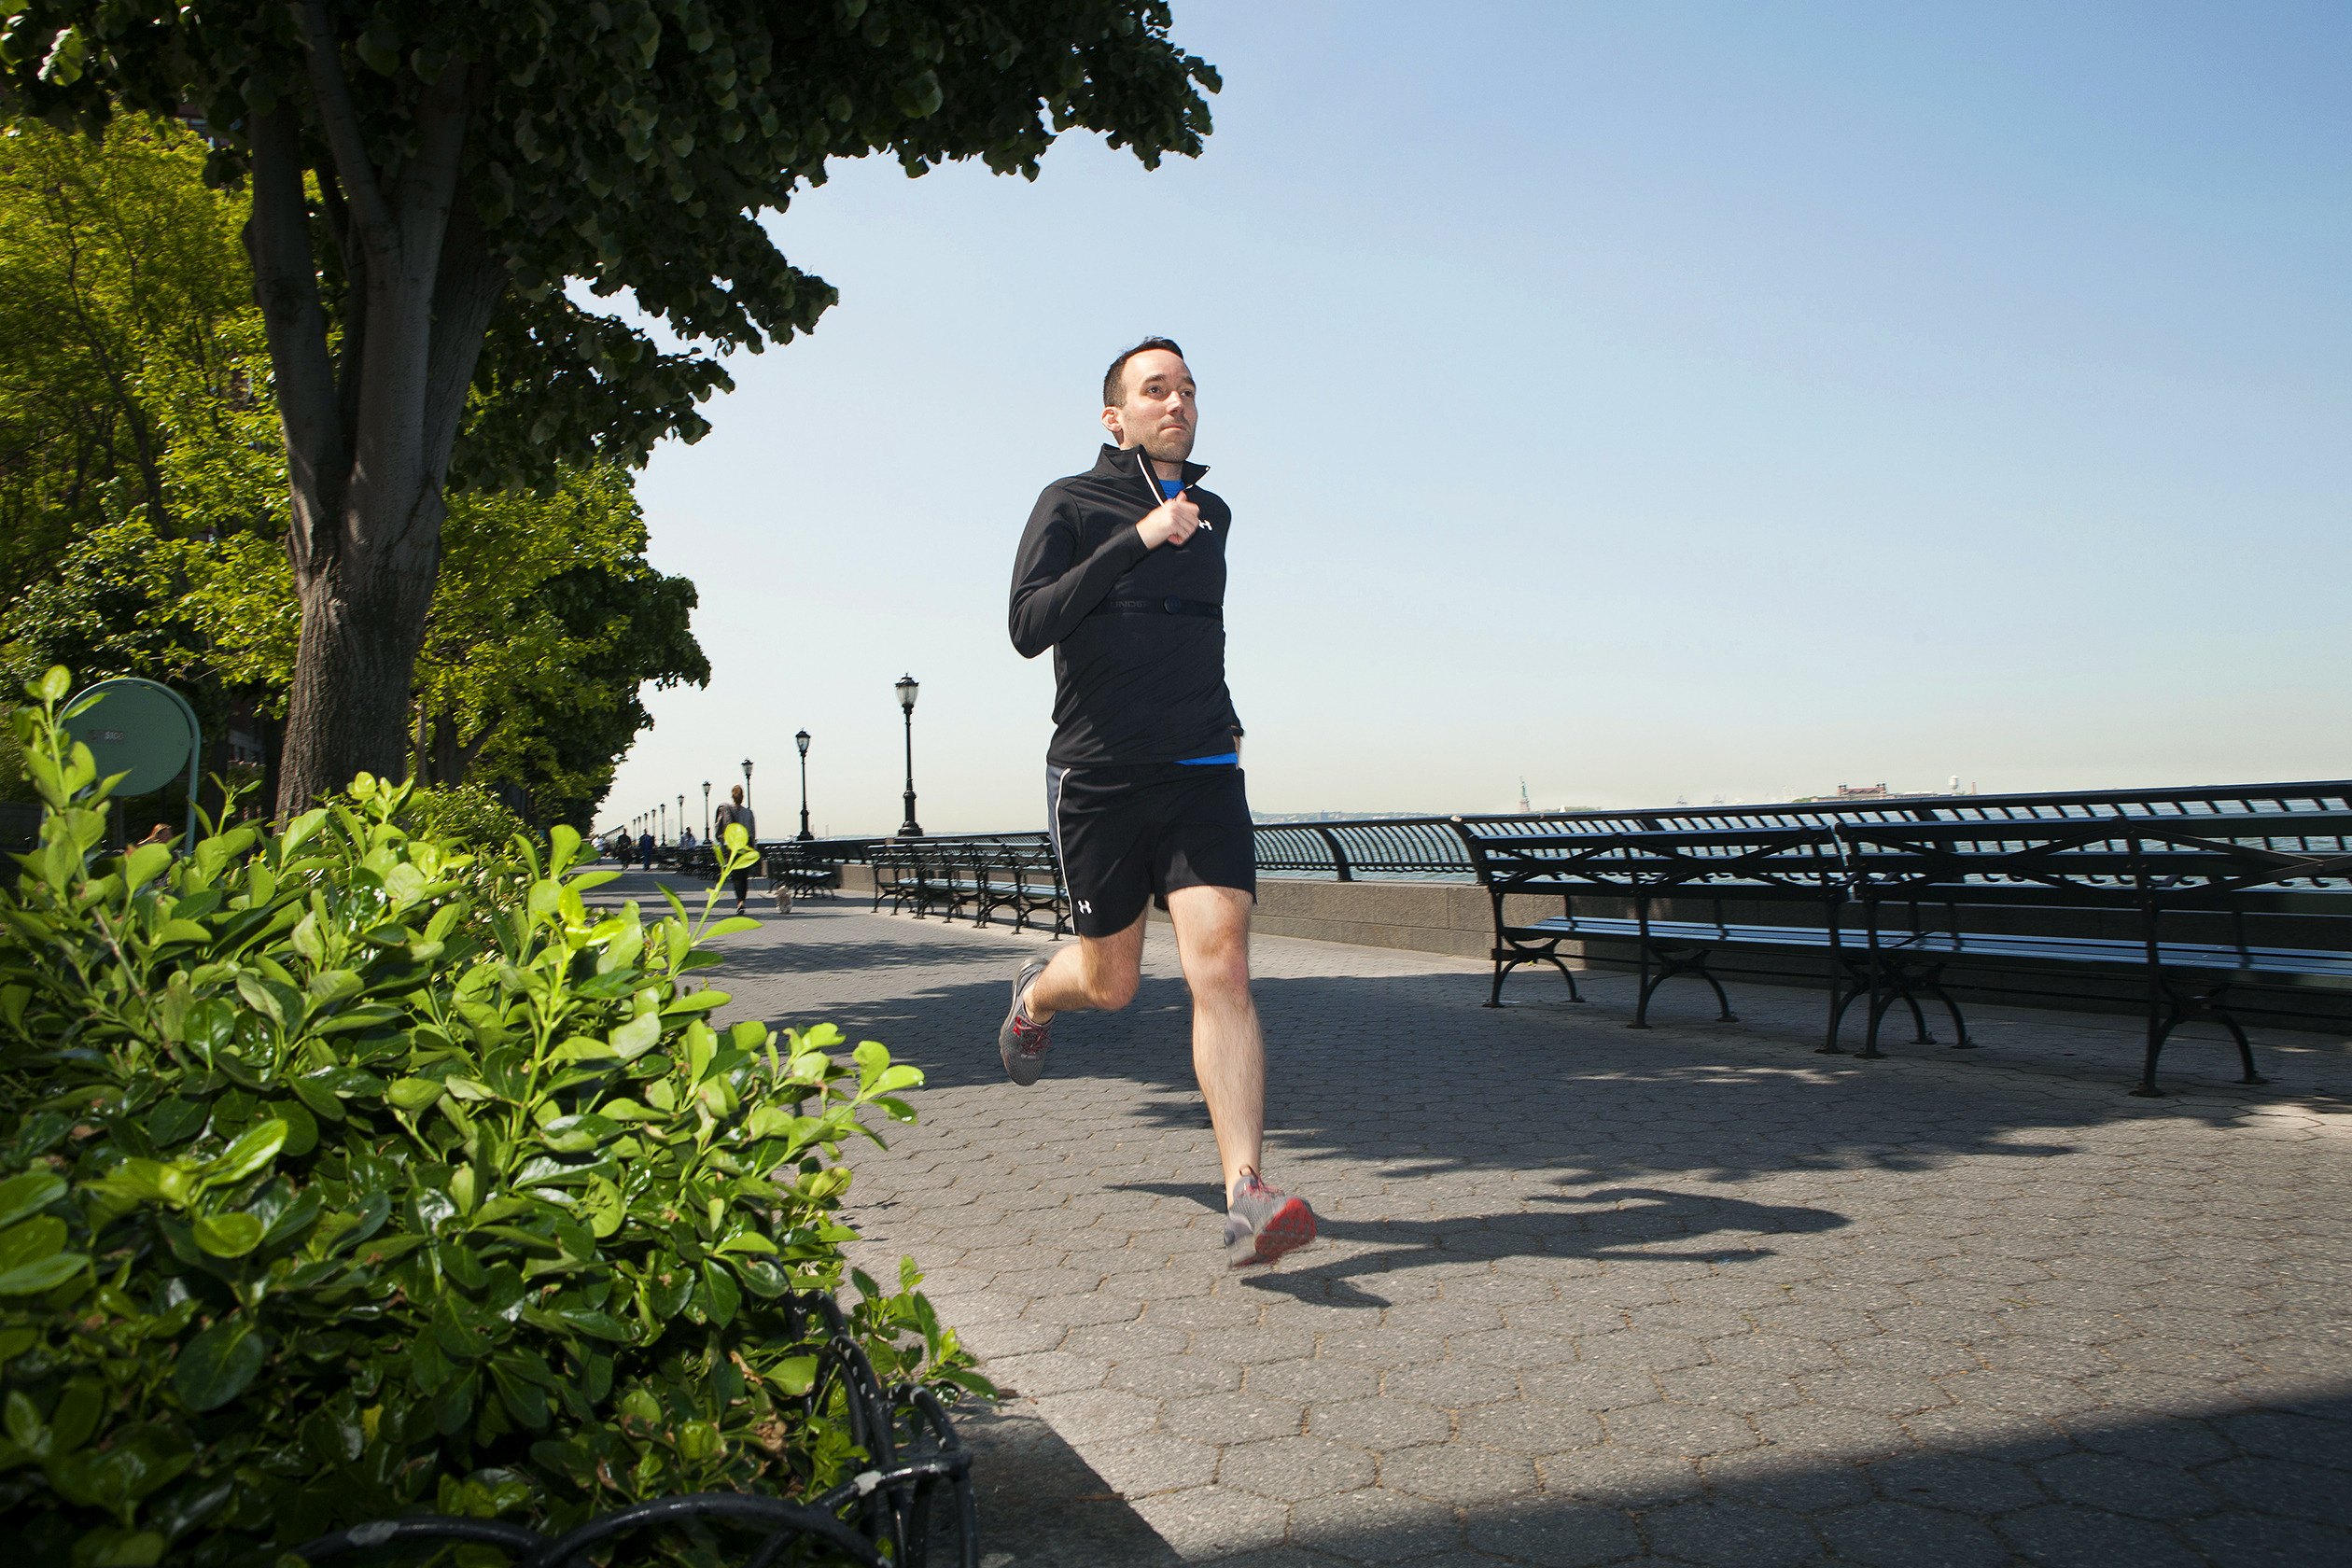 The author increased his weekly run from 15 to 25 miles while using the gear.